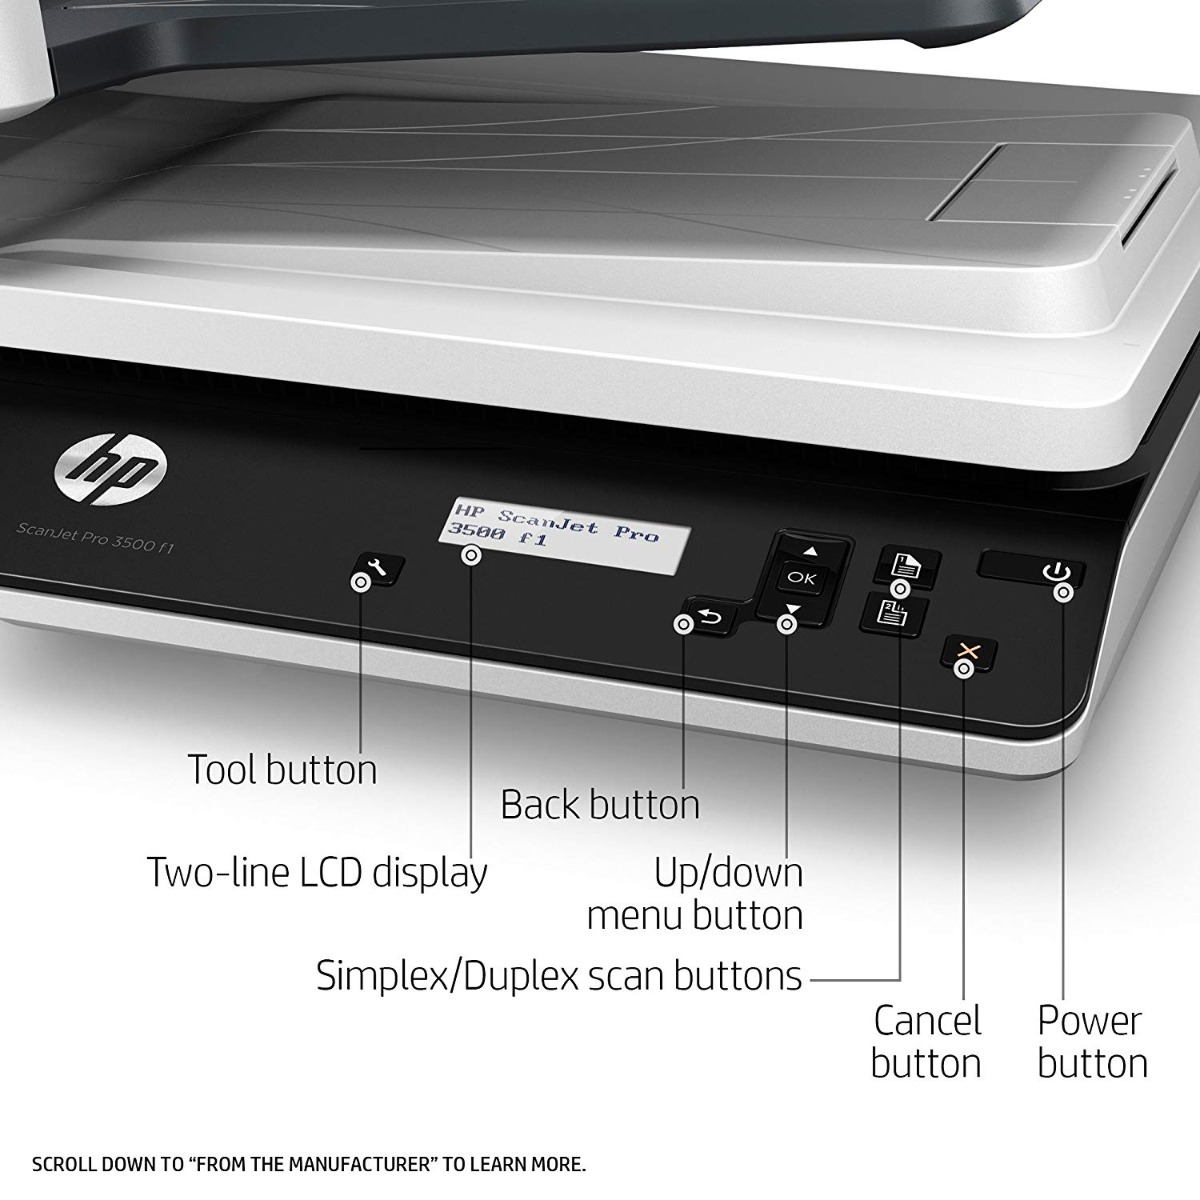 HP ScanJet Pro 3500 f1 Flatbed Scanner - Printers India